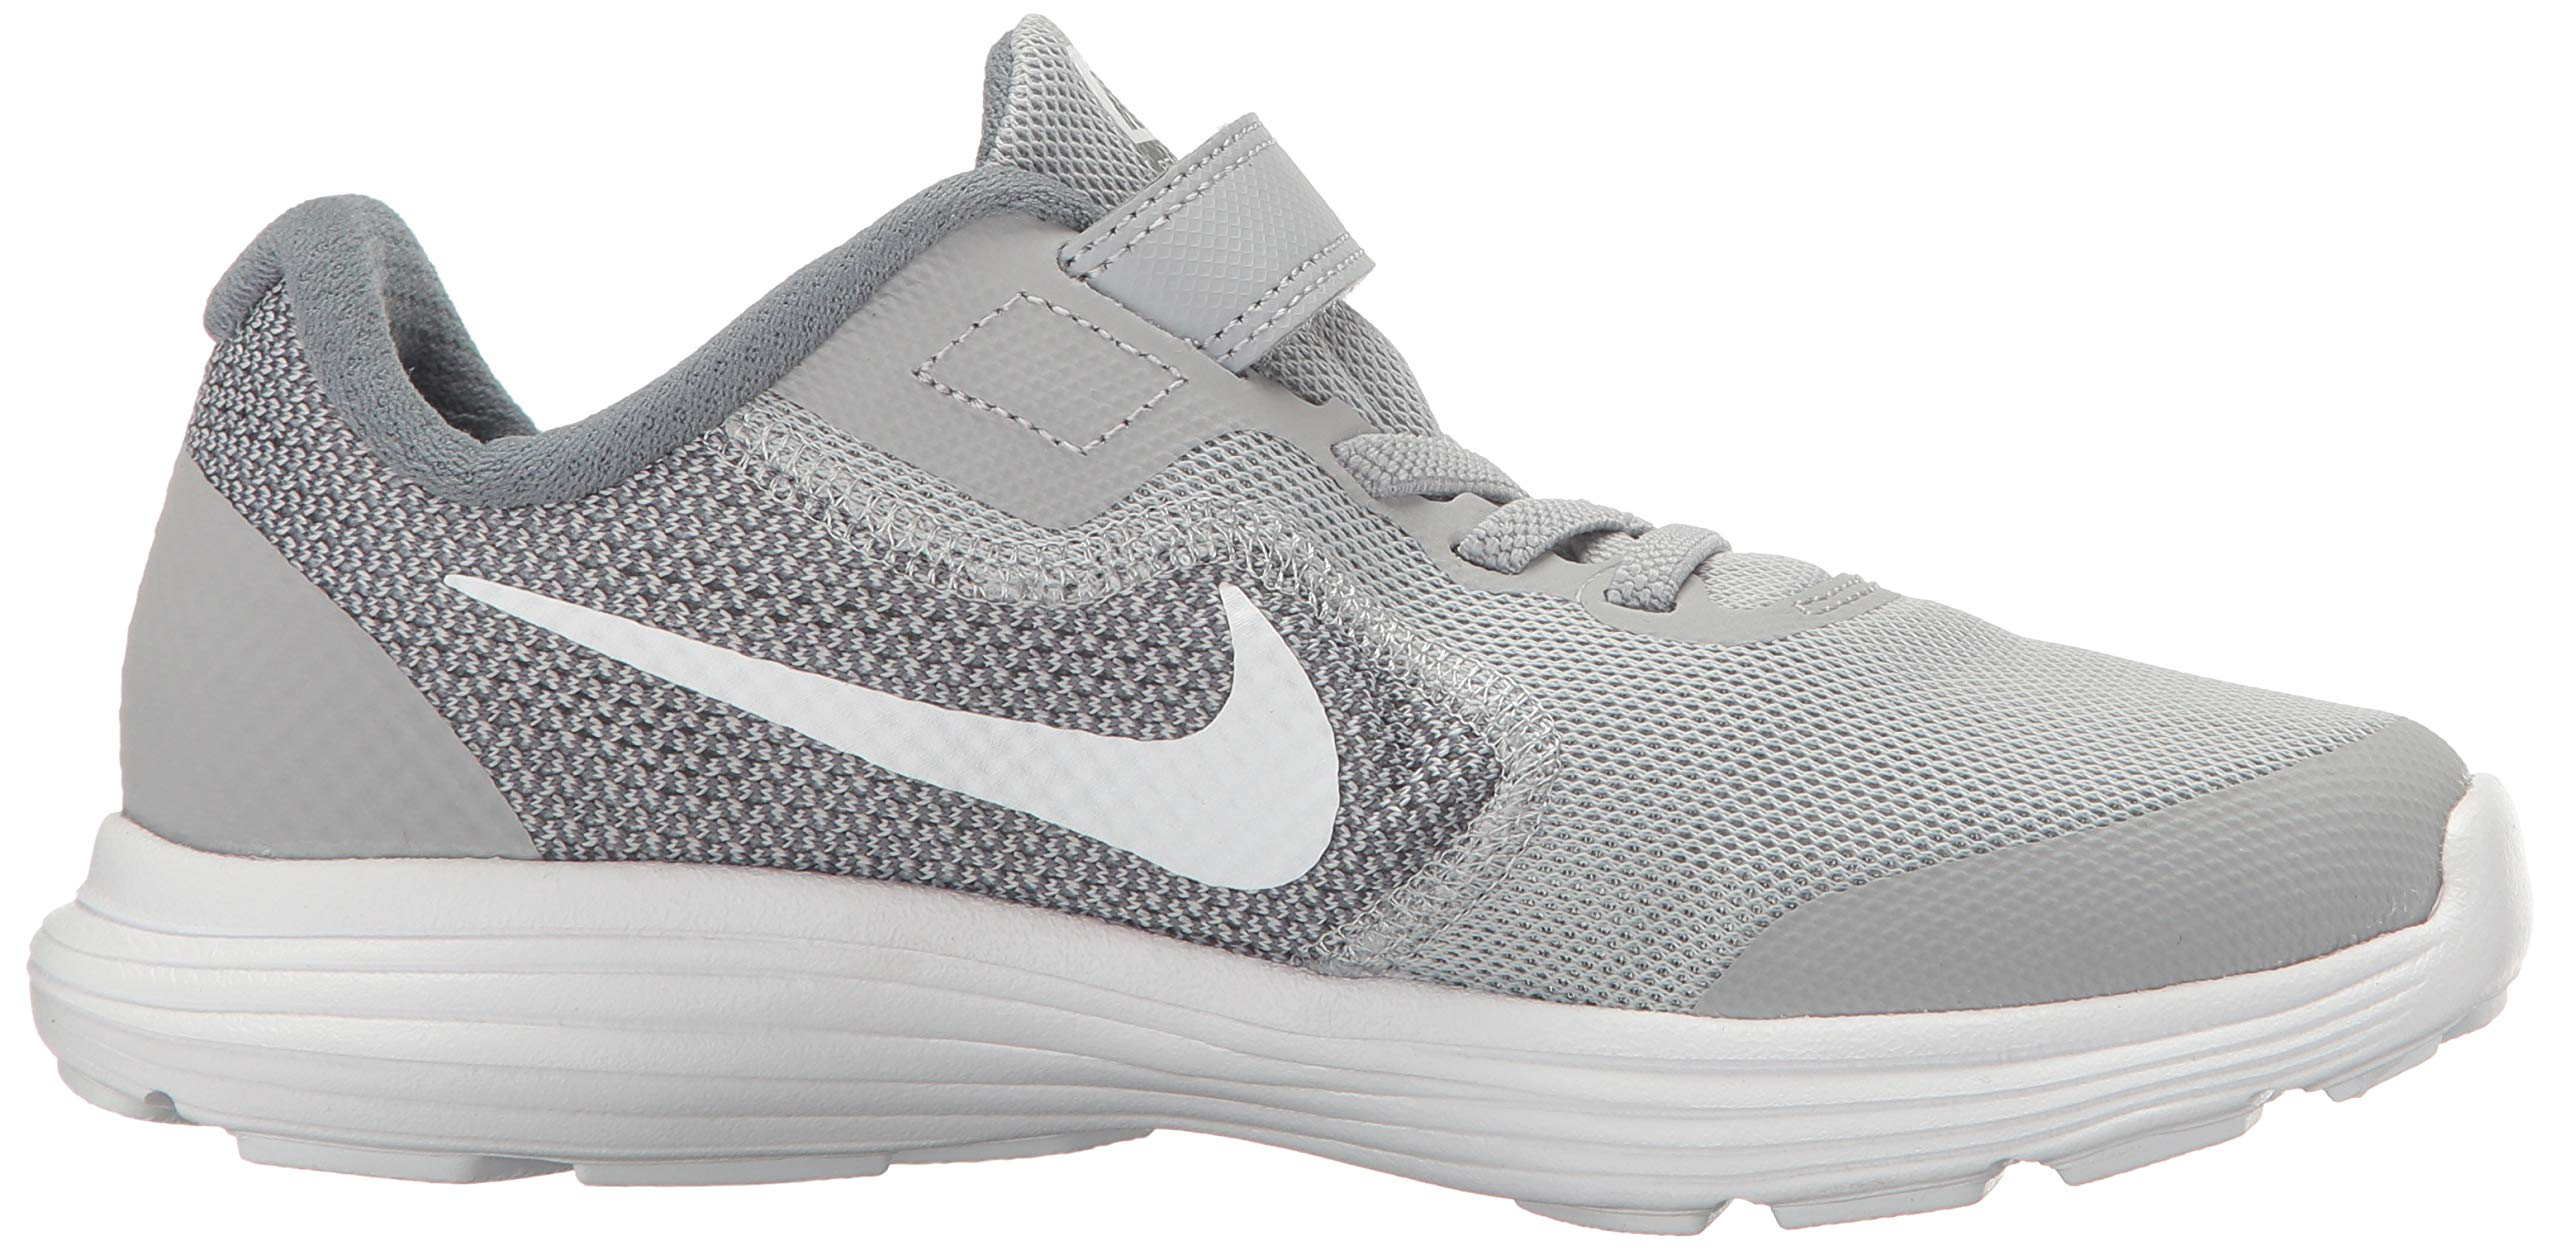 NIKE Kids' Revolution 3 (Psv) Running-Shoes, Wolf Grey/White/Cool Grey, 1 M US Little Kid by Nike (Image #6)